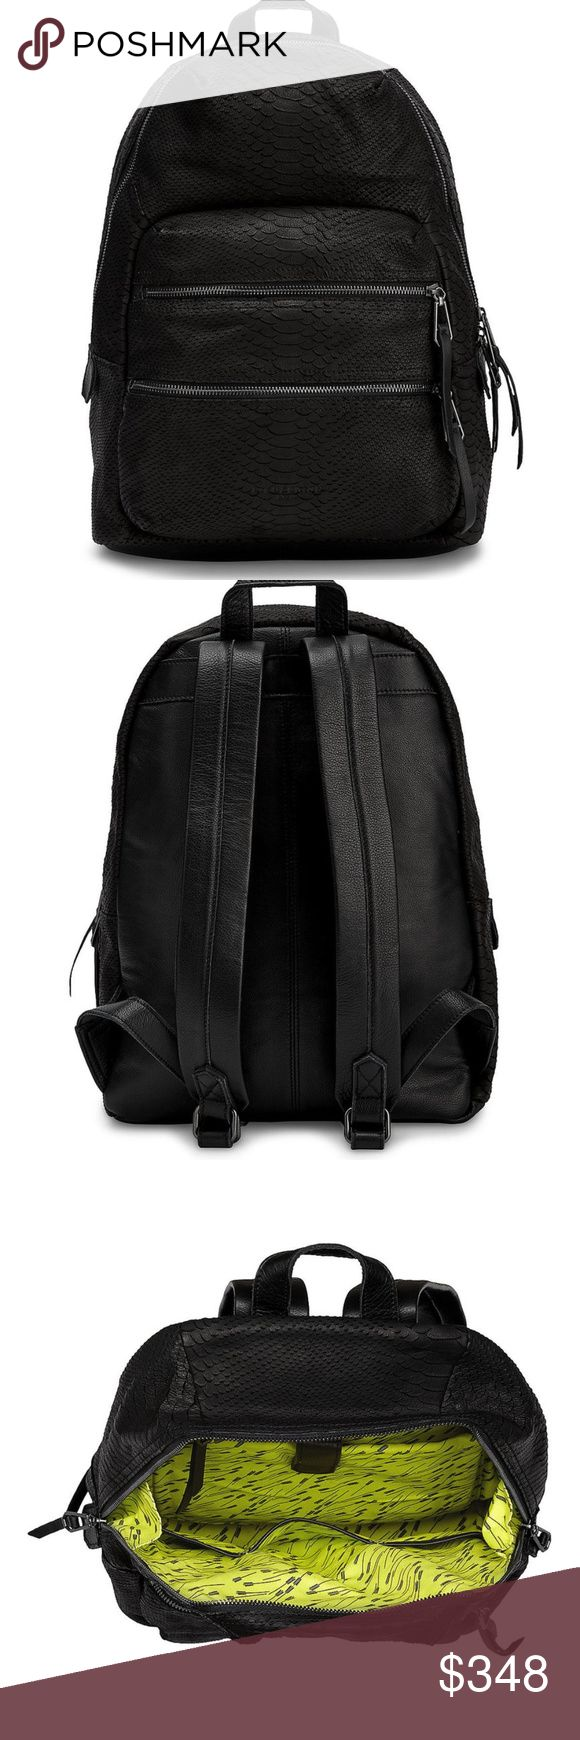 """Saku Backpack in Ninja Black From the streets to the office - a backpack with edgy + style. Never used, with tags.          Nubuck leather with a python finish         Adjustable straps         Patterned textile lining         12""""H x 9""""W x 4.2""""D         100% Cowhide leather Liebeskind Bags"""